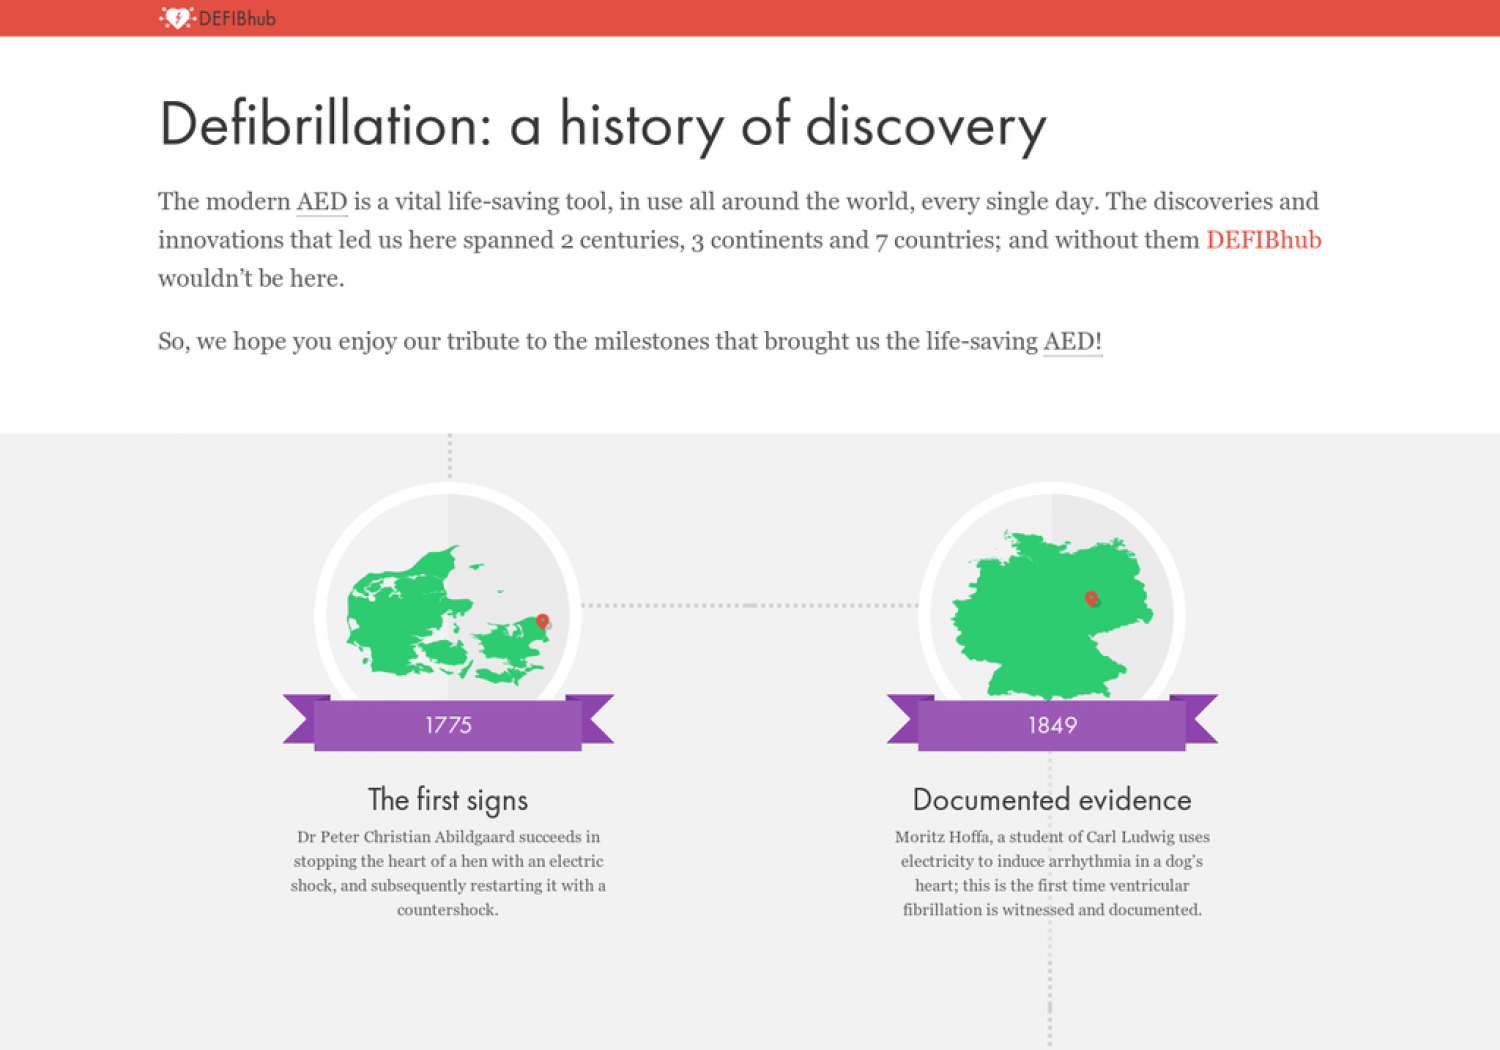 Defibrillation: A History of Discovery Infographic